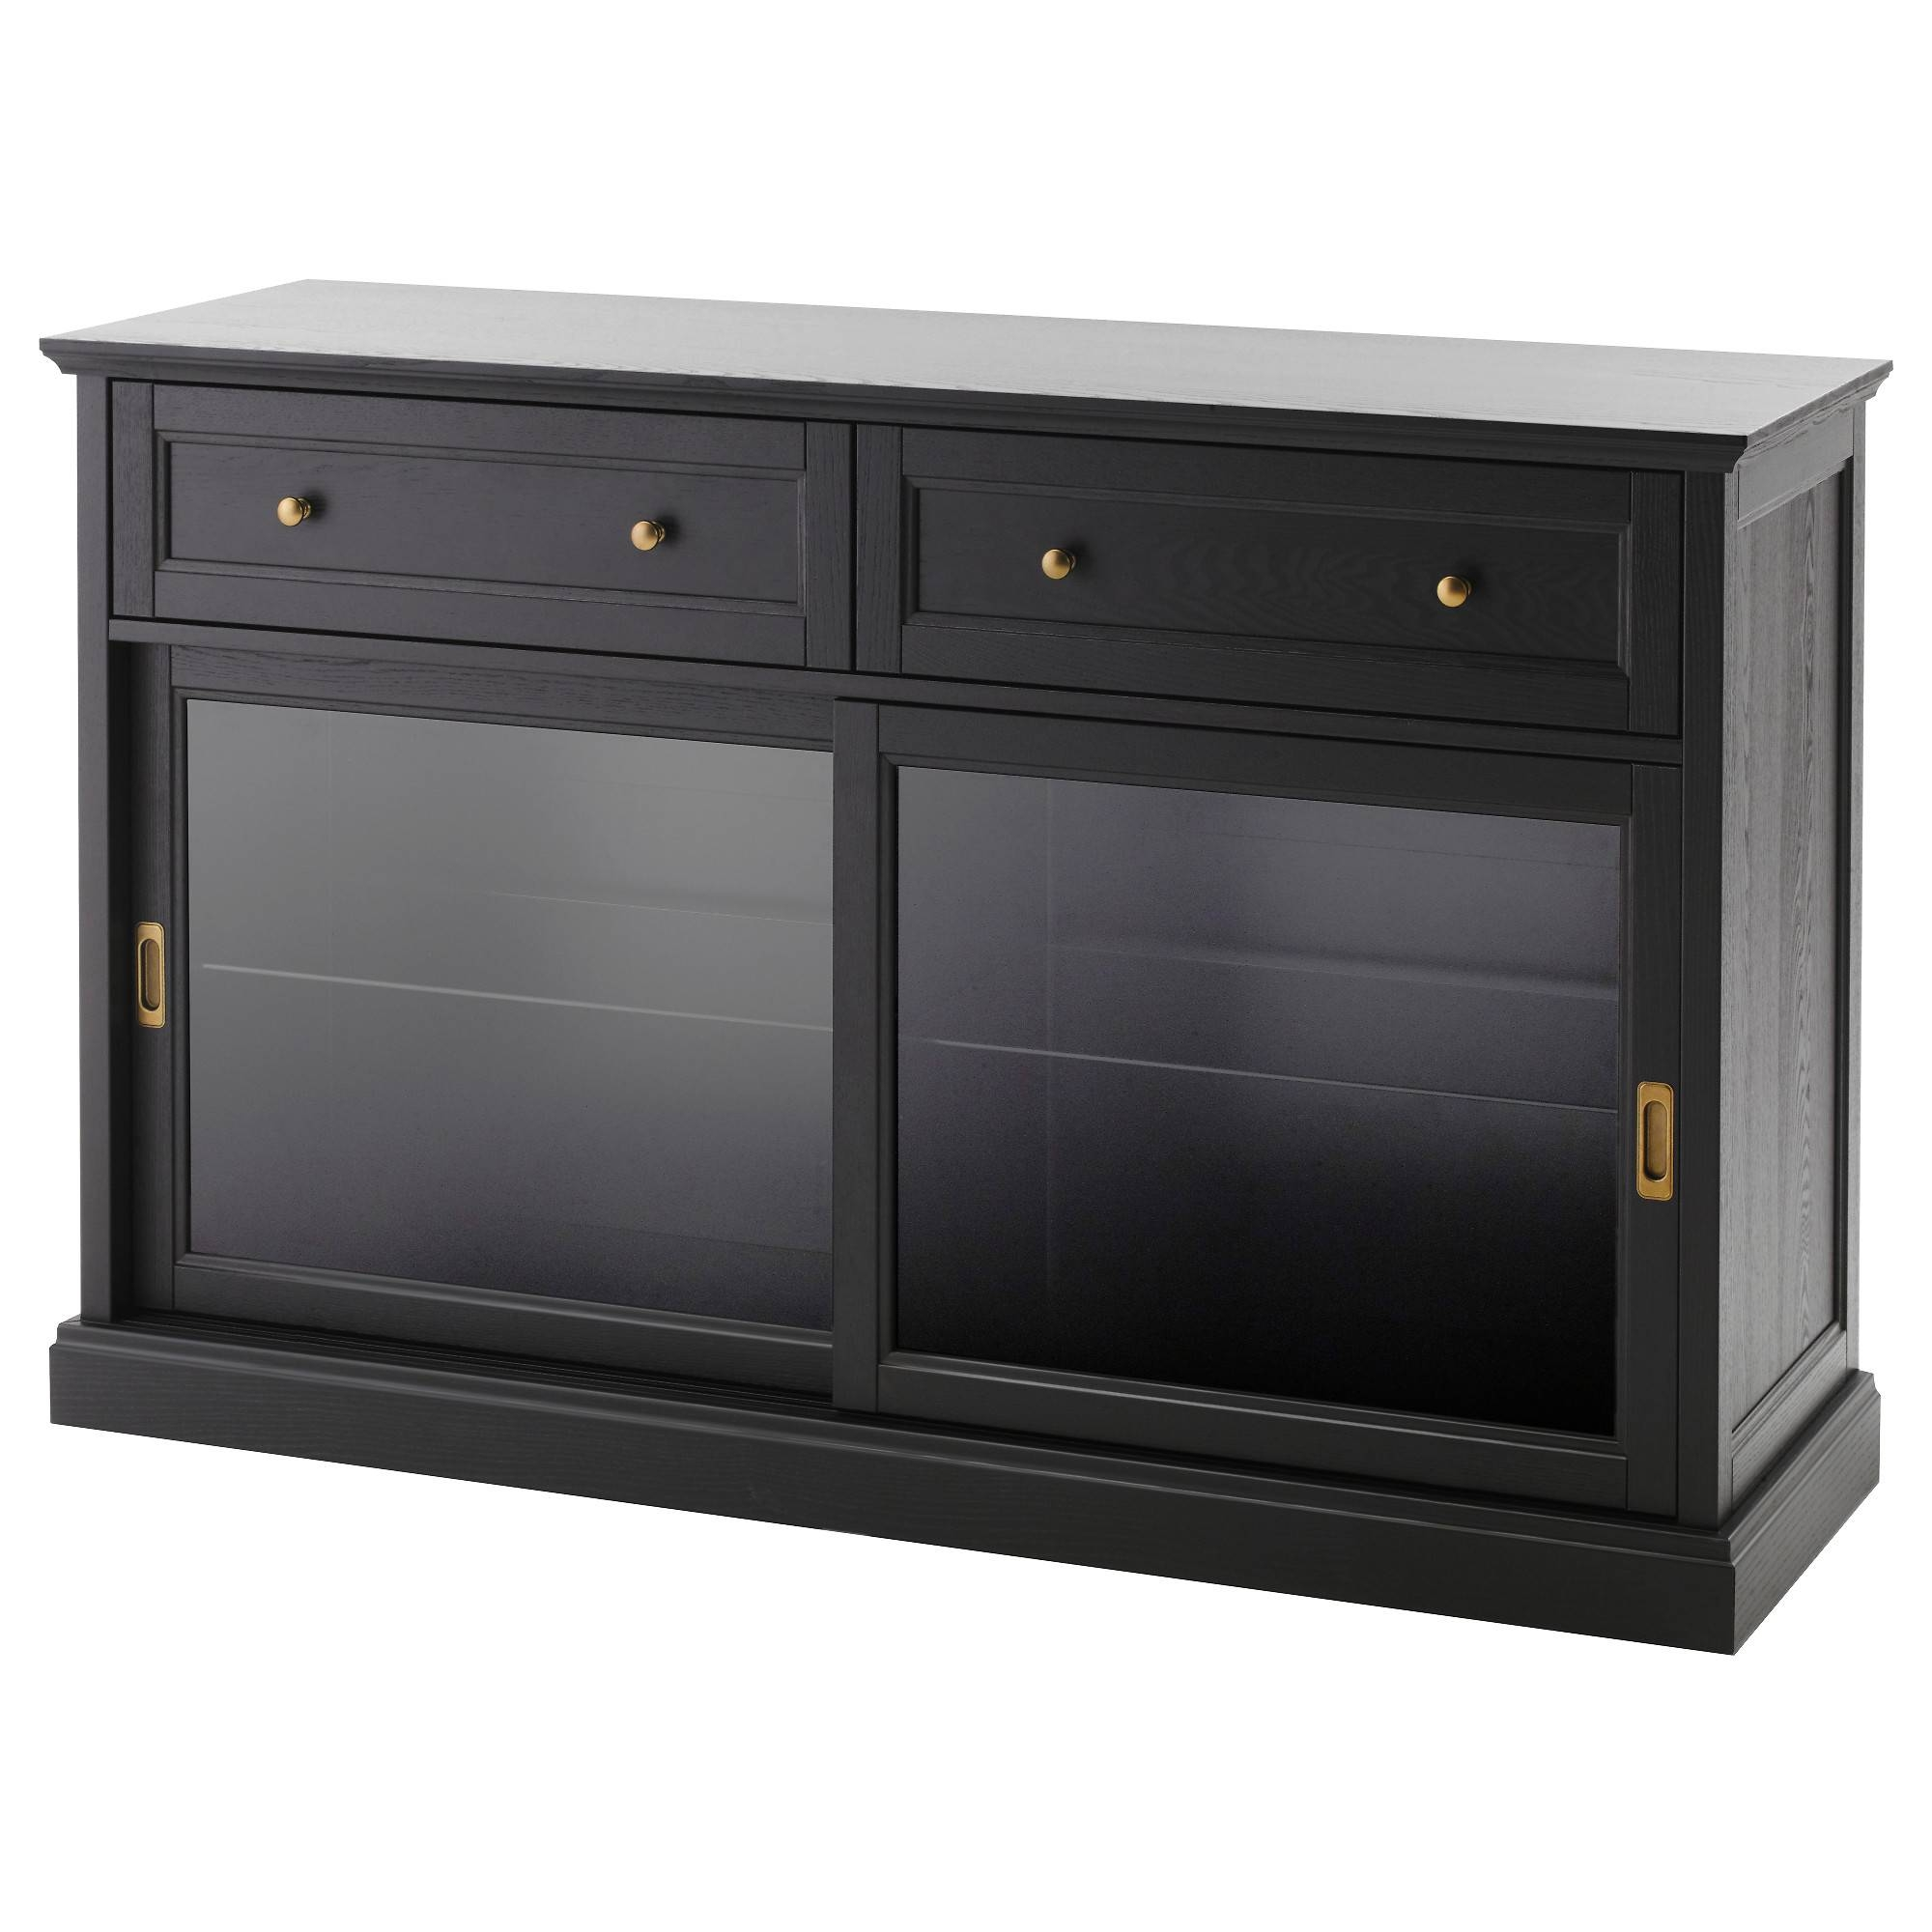 Buffet Tables & Sideboards - Ikea regarding Cheap Black Sideboards (Image 3 of 30)